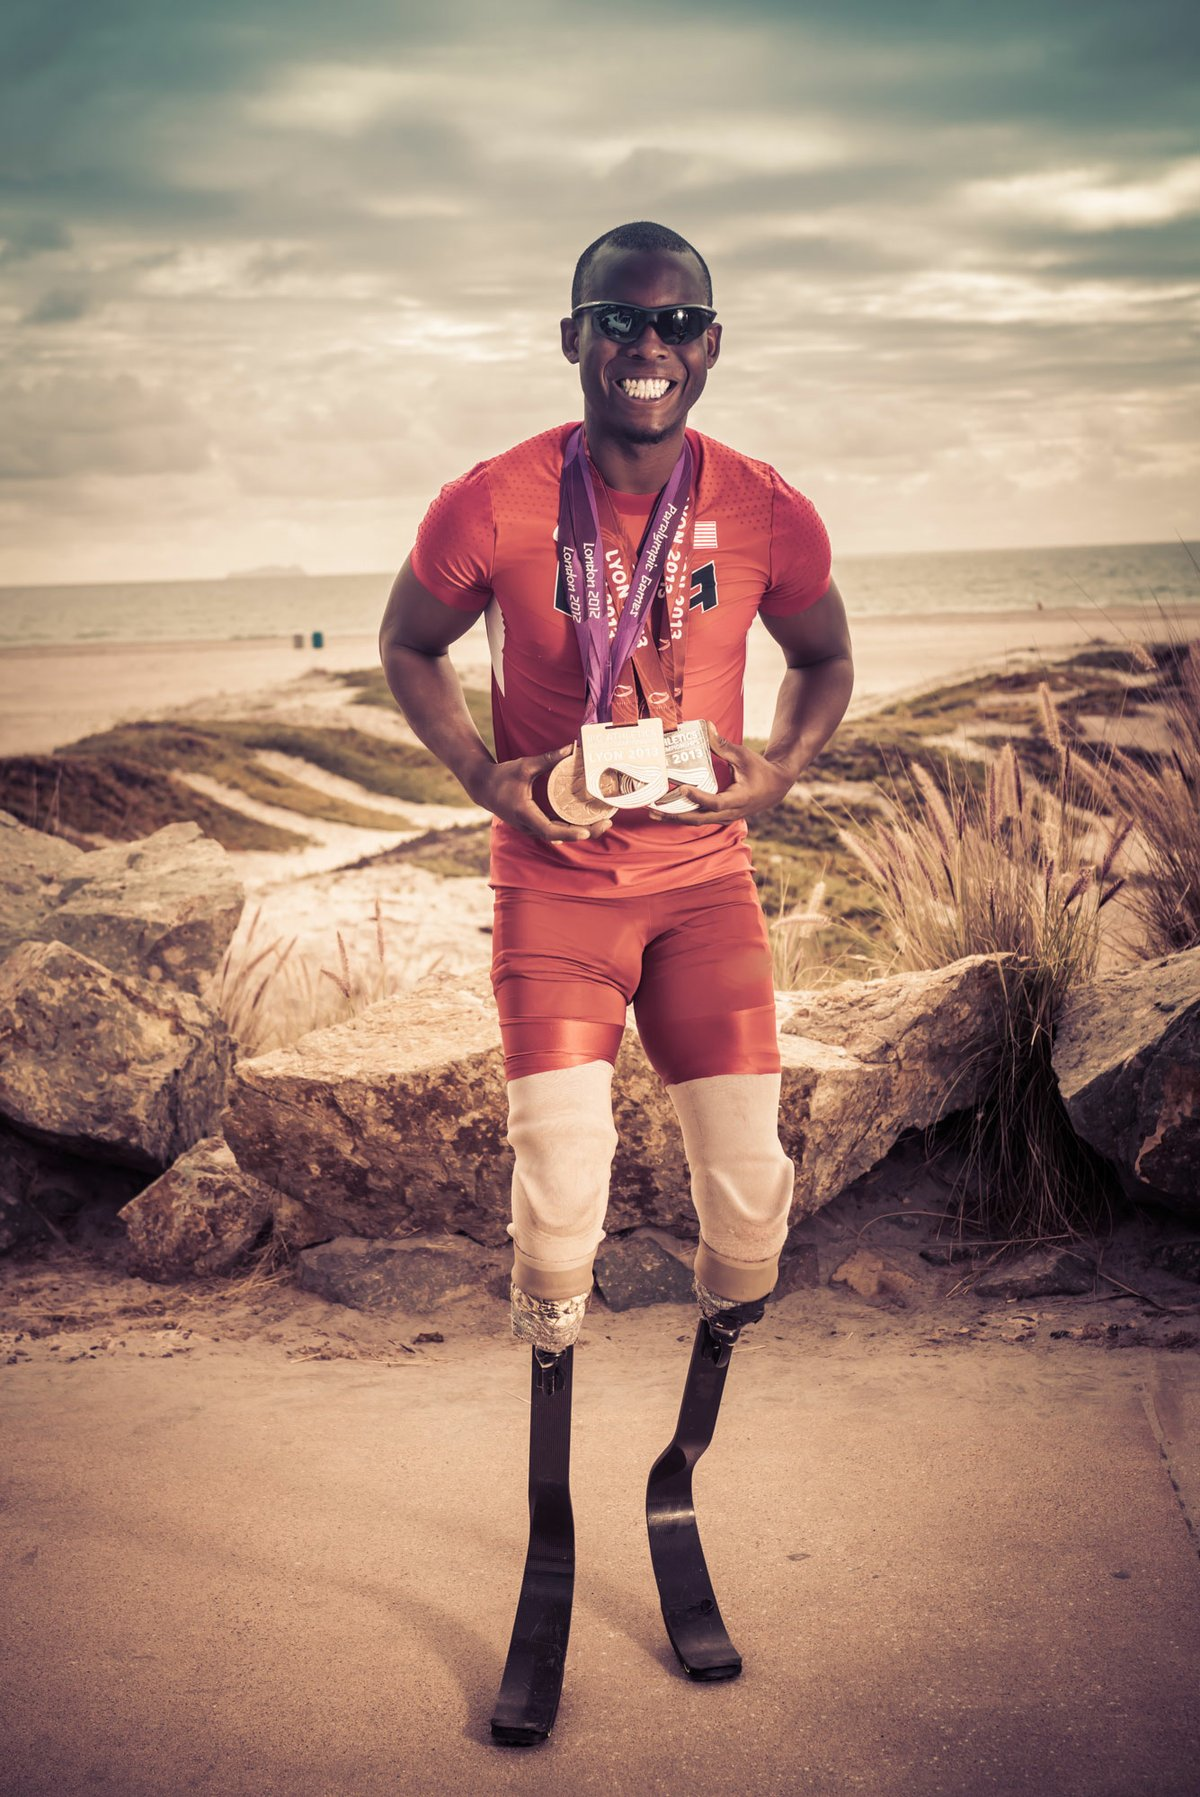 Paralympic Blade Runner Blake Leeper to Appear at Sunday's